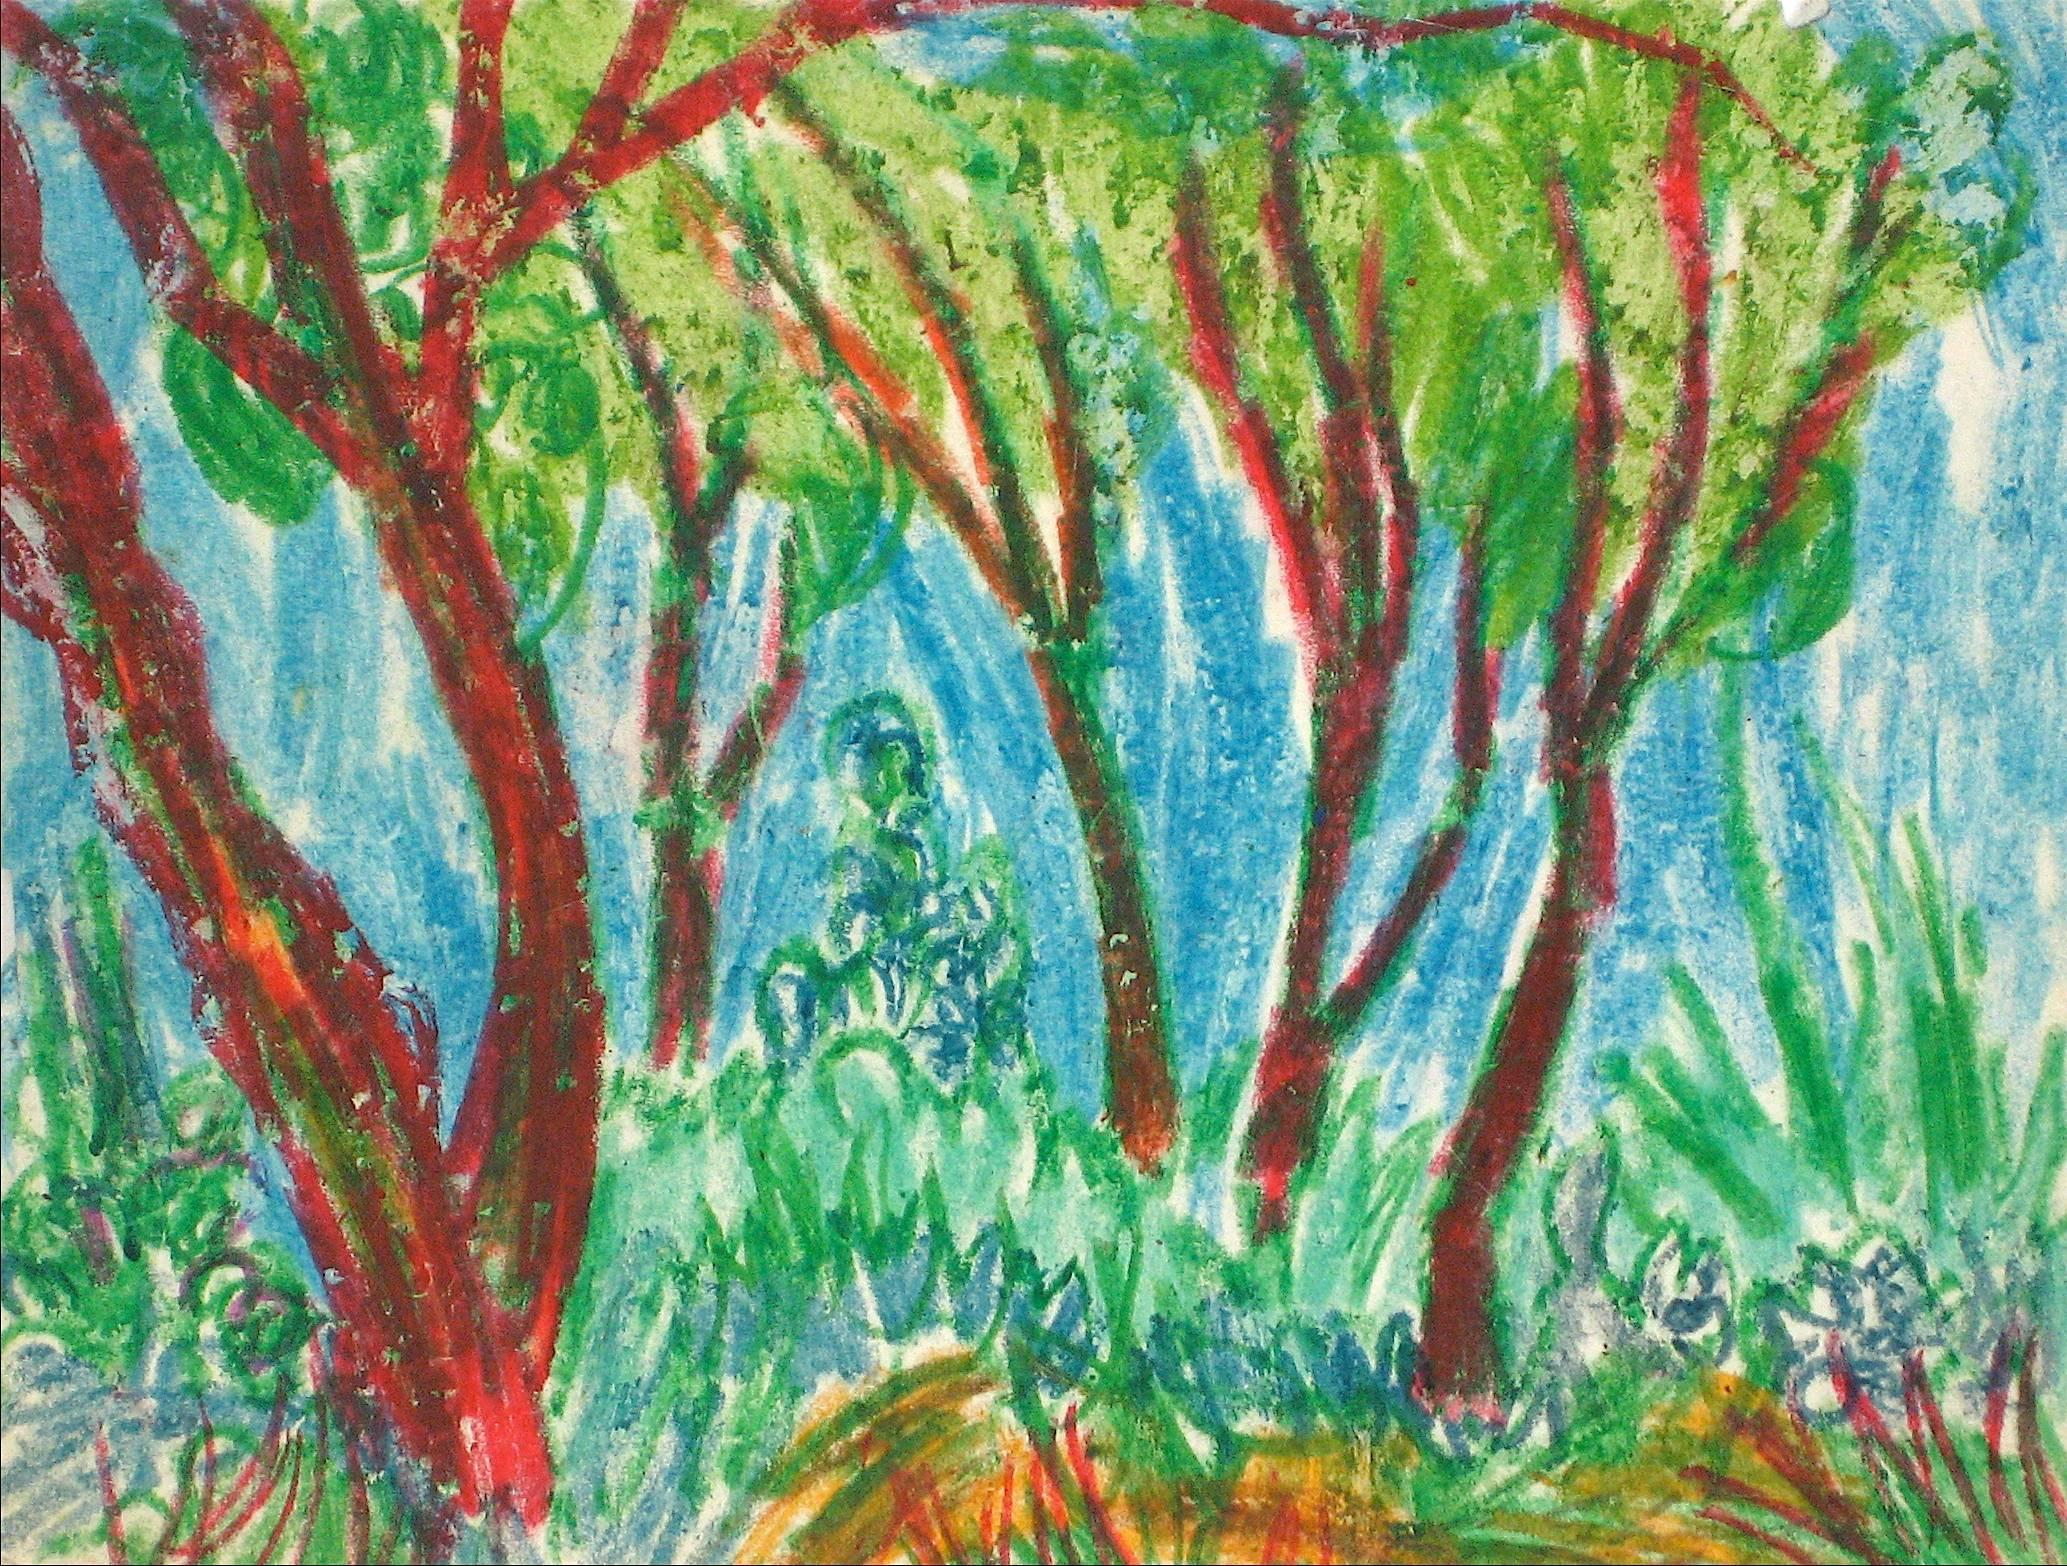 Colorful Trees in a Forest Grove, Expressionist Oil Pastel Drawing, Circa 1960